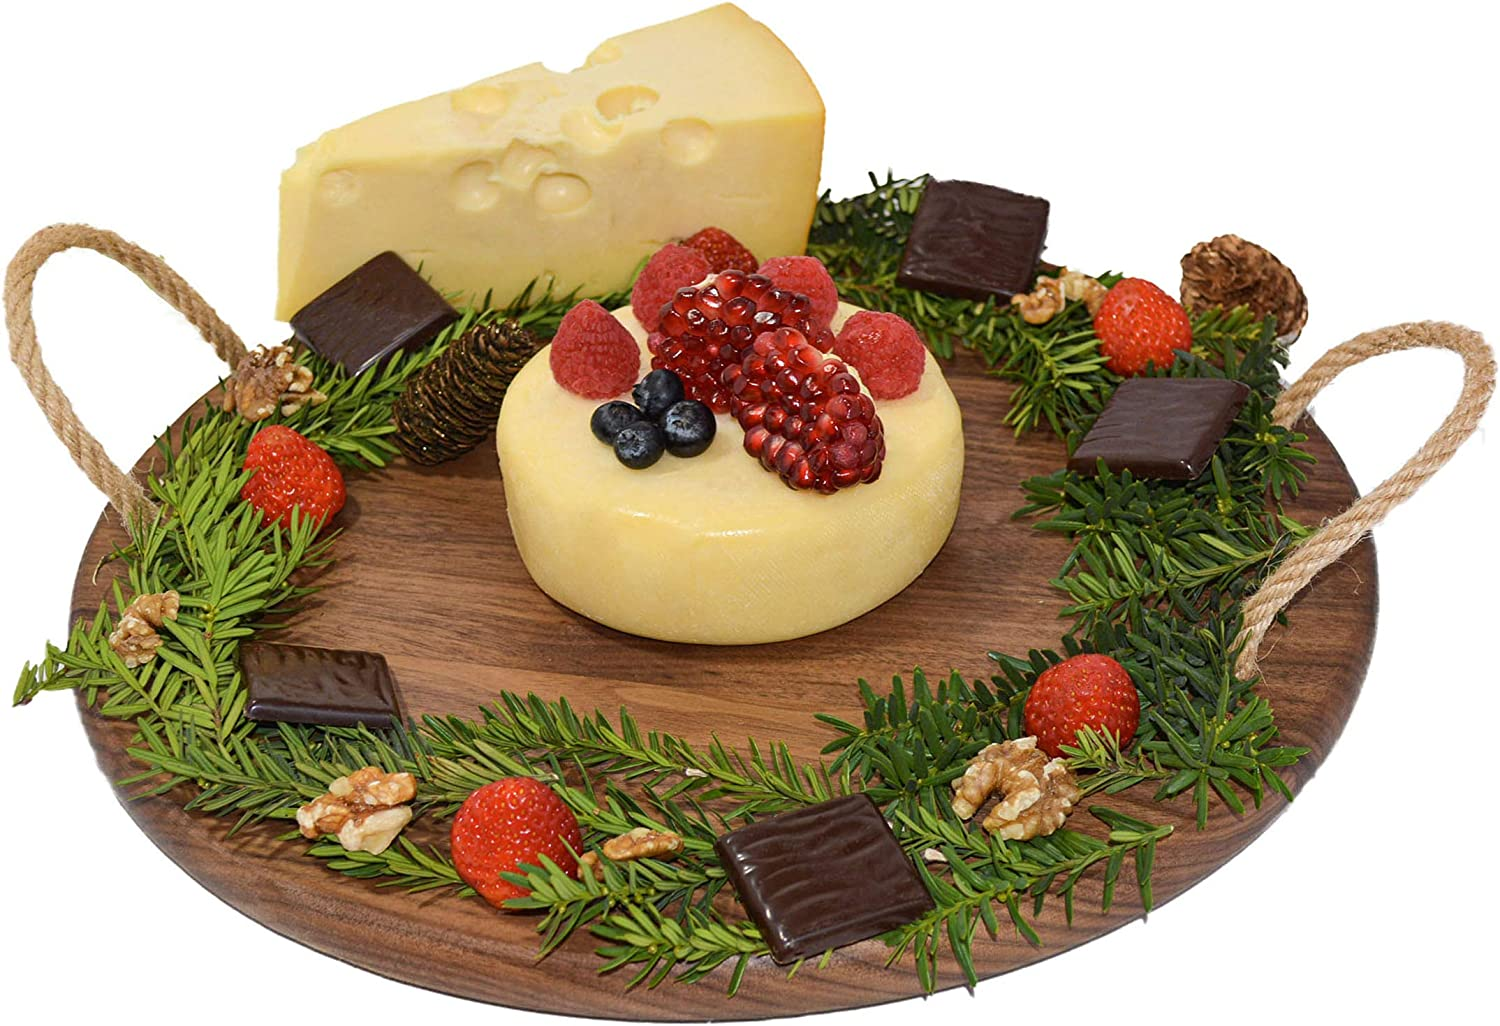 Organic OFFicial mail order Black Walnut Wood Cheese Max 86% OFF Board 14